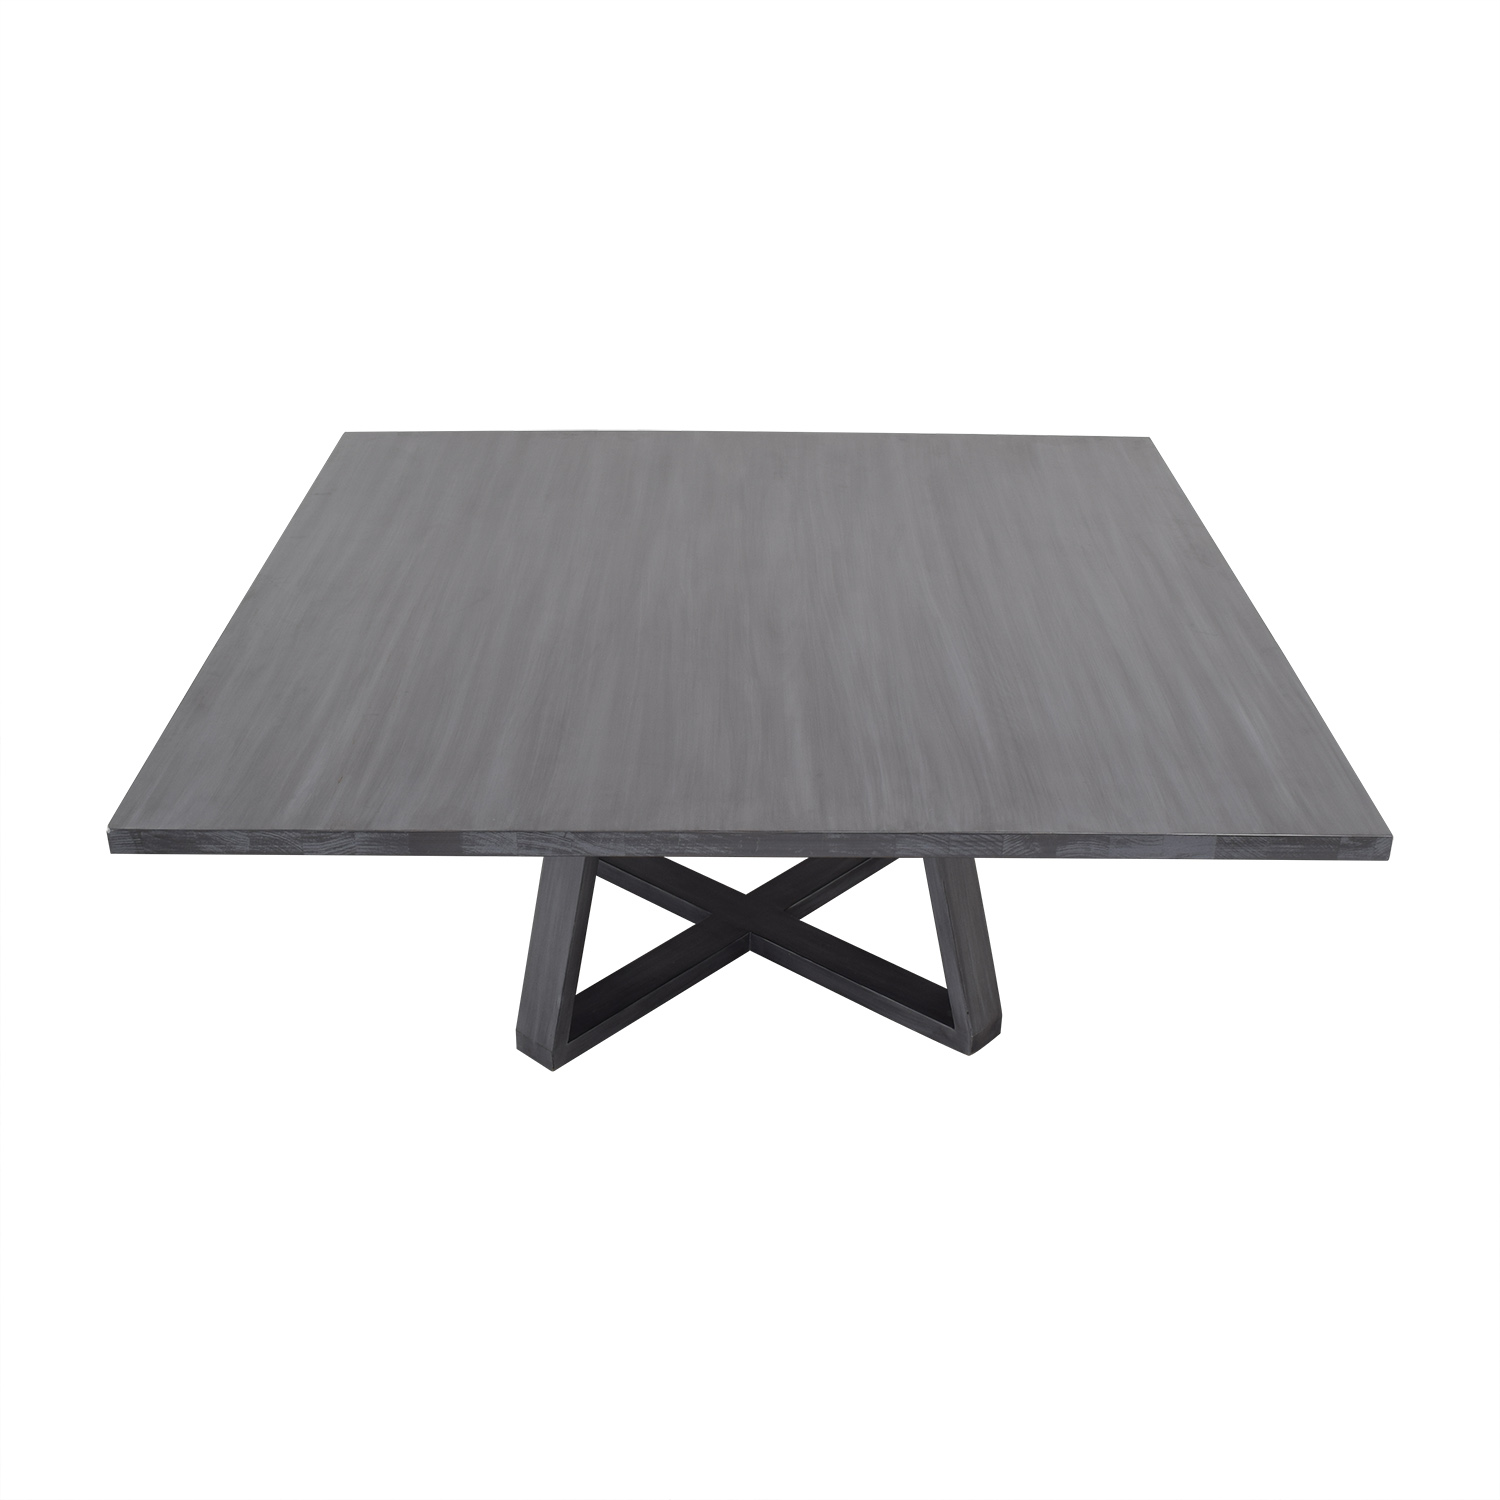 South Cone Furniture South Cone Furniture Andre Square Dining Table grey